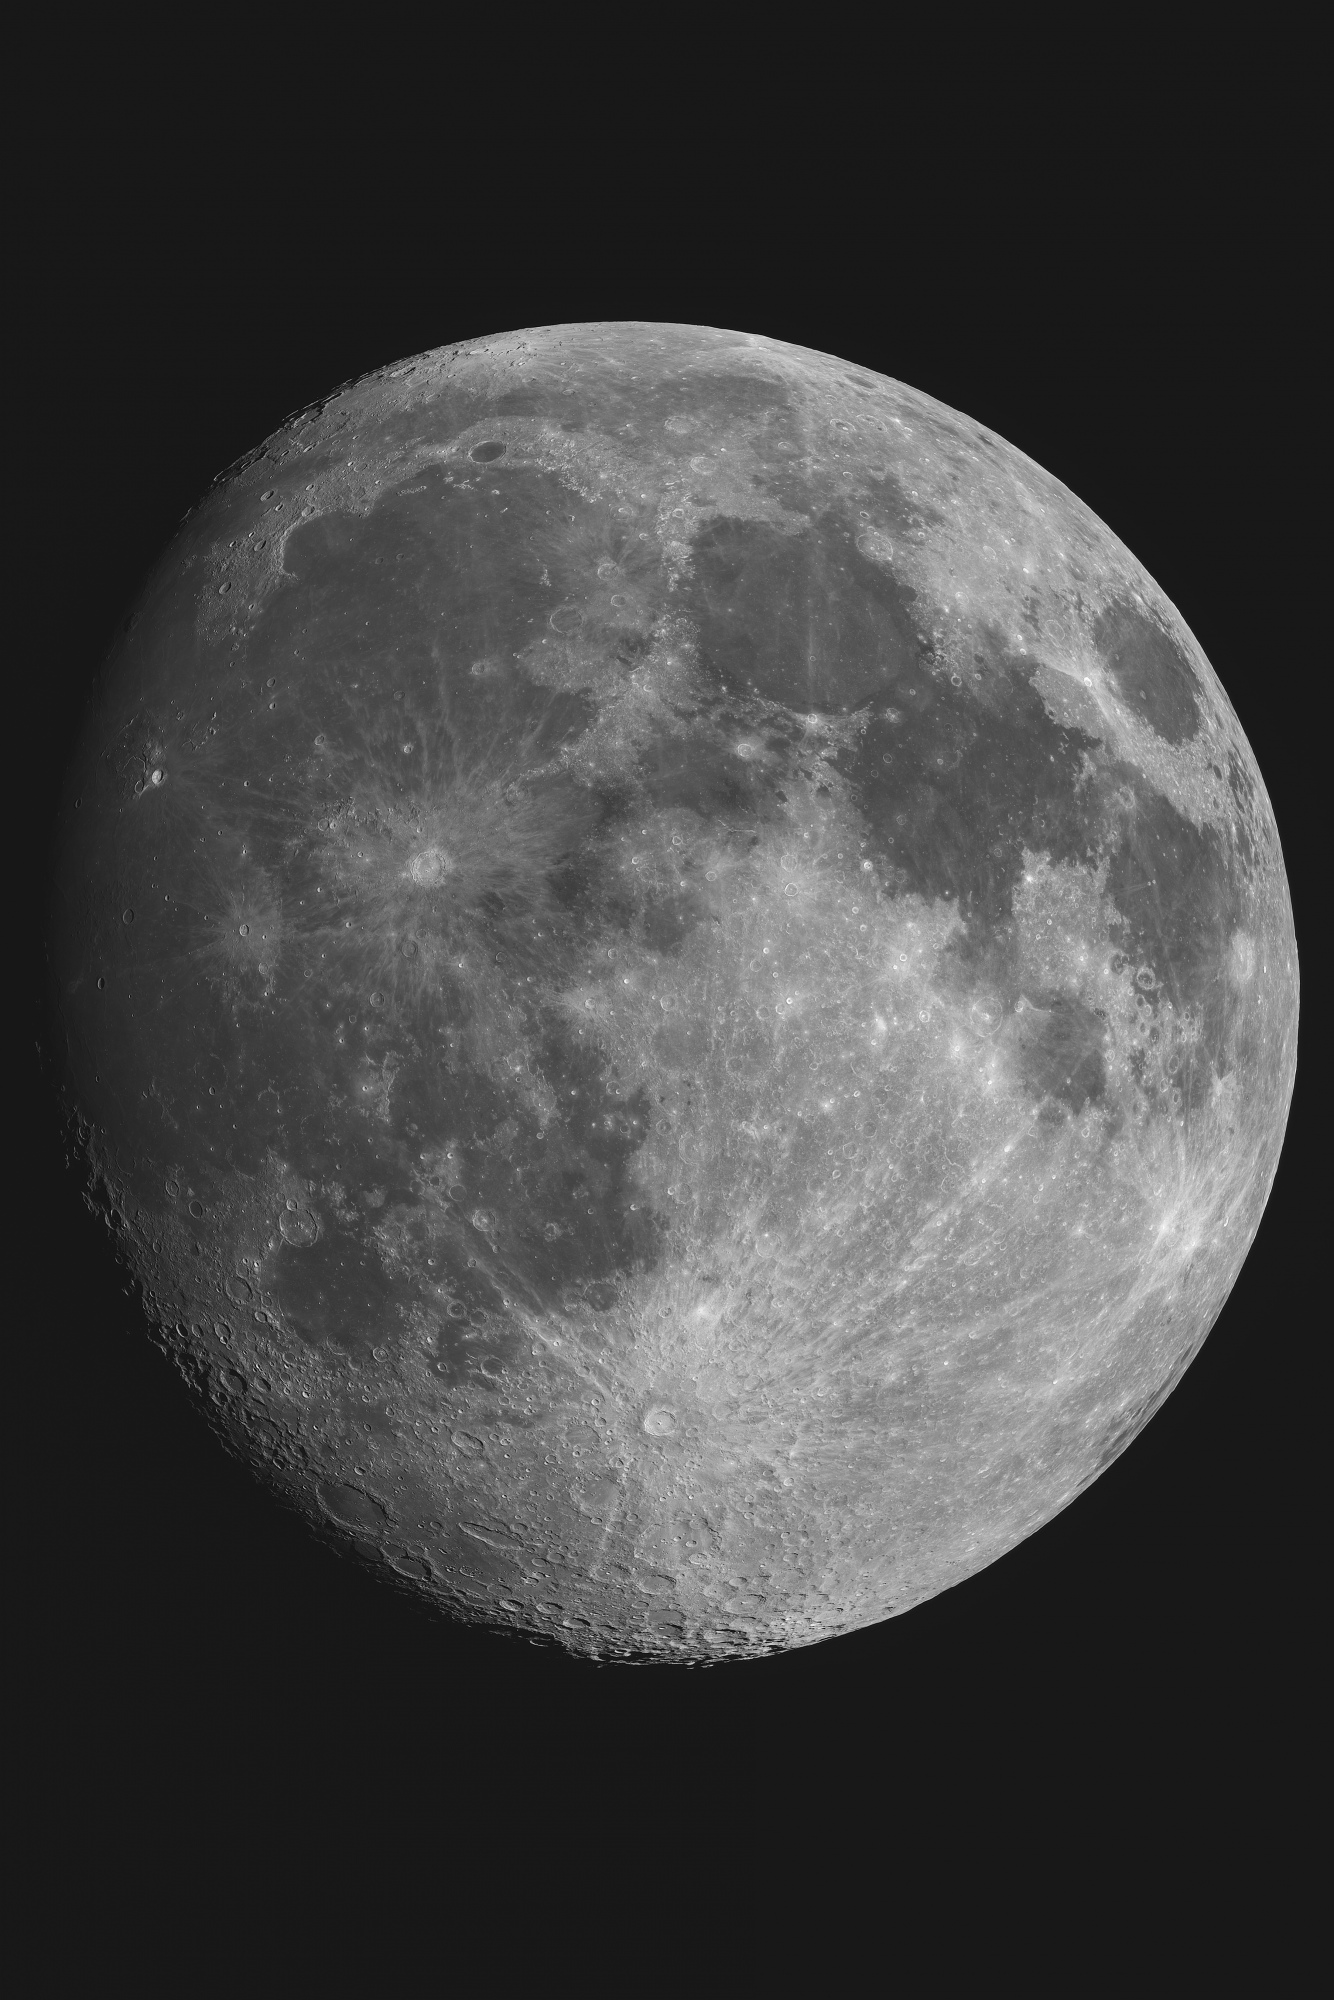 Moon_19_35_24_2_G_240221_Gain=20(off)_Exposure=16.5ms_lapl3_ap80633-.jpg